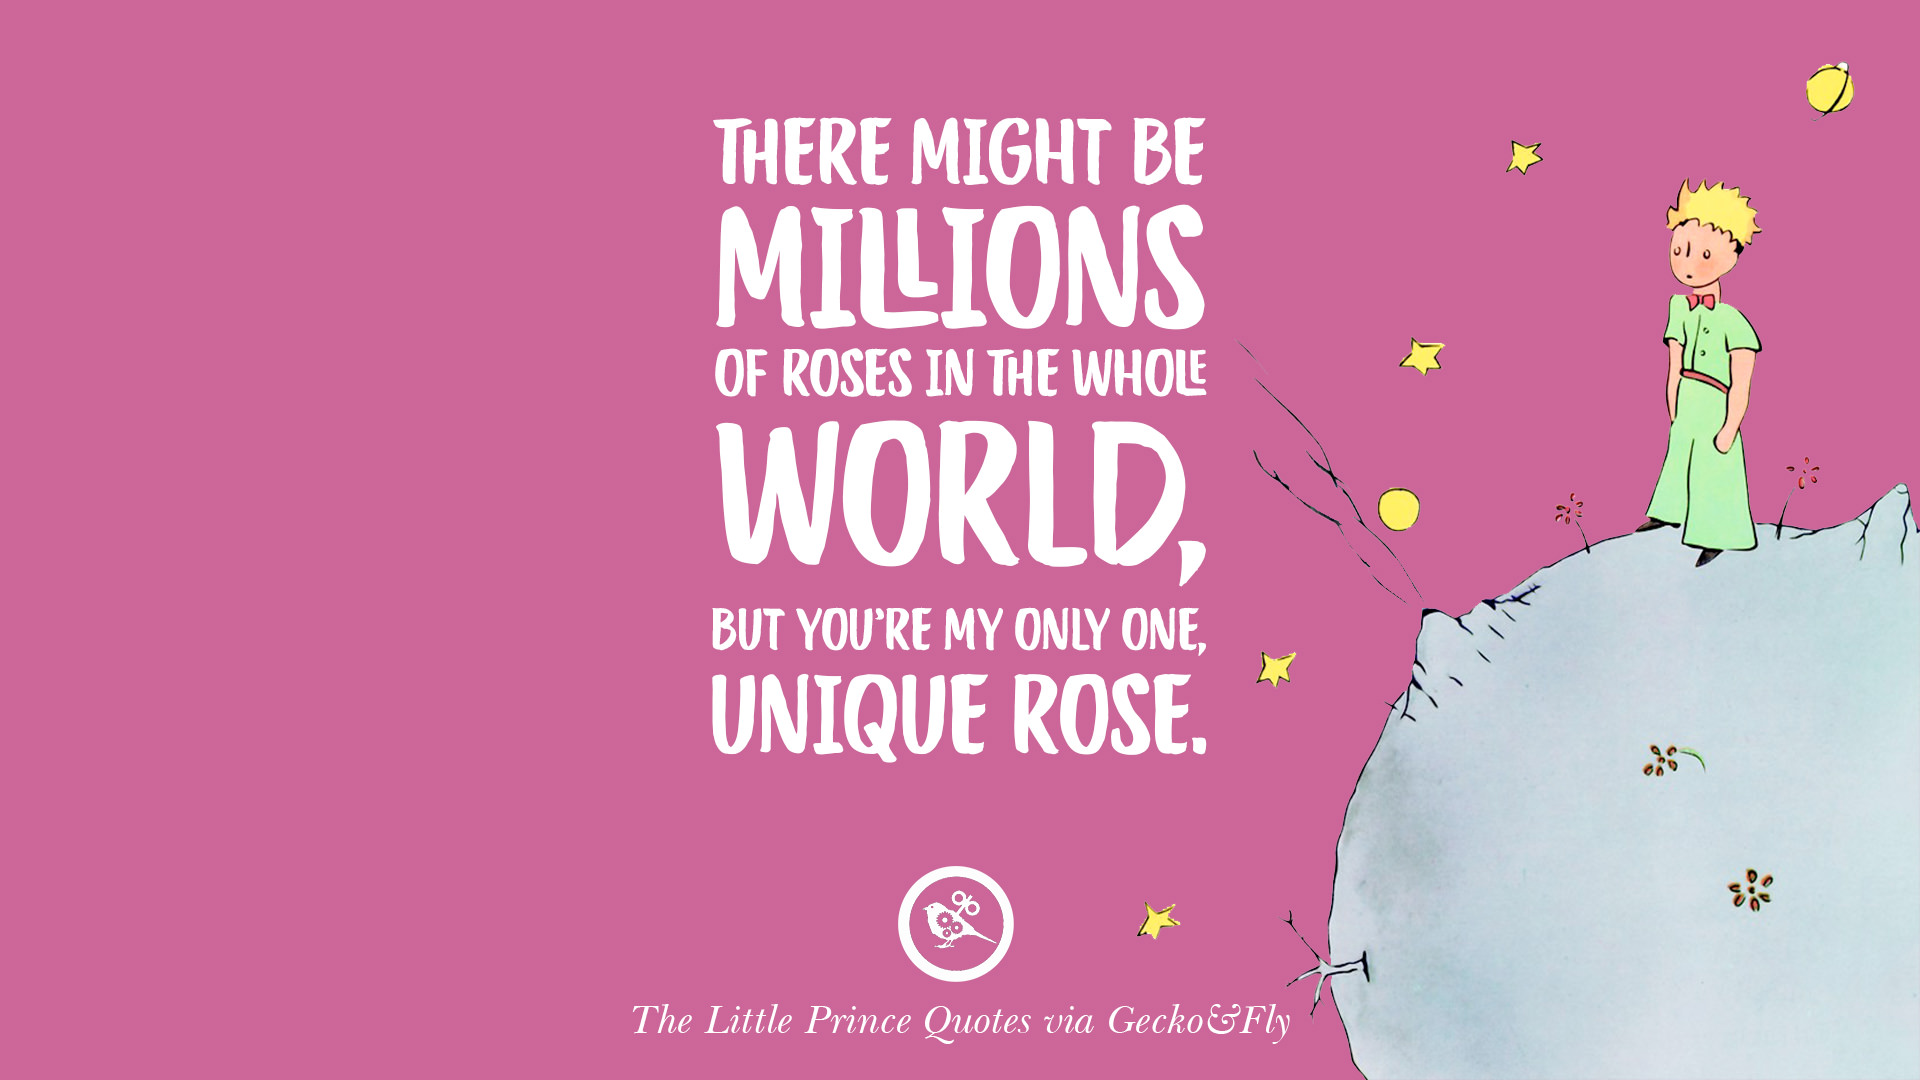 12 Quotes By The Little Prince On Life Lesson, True Love